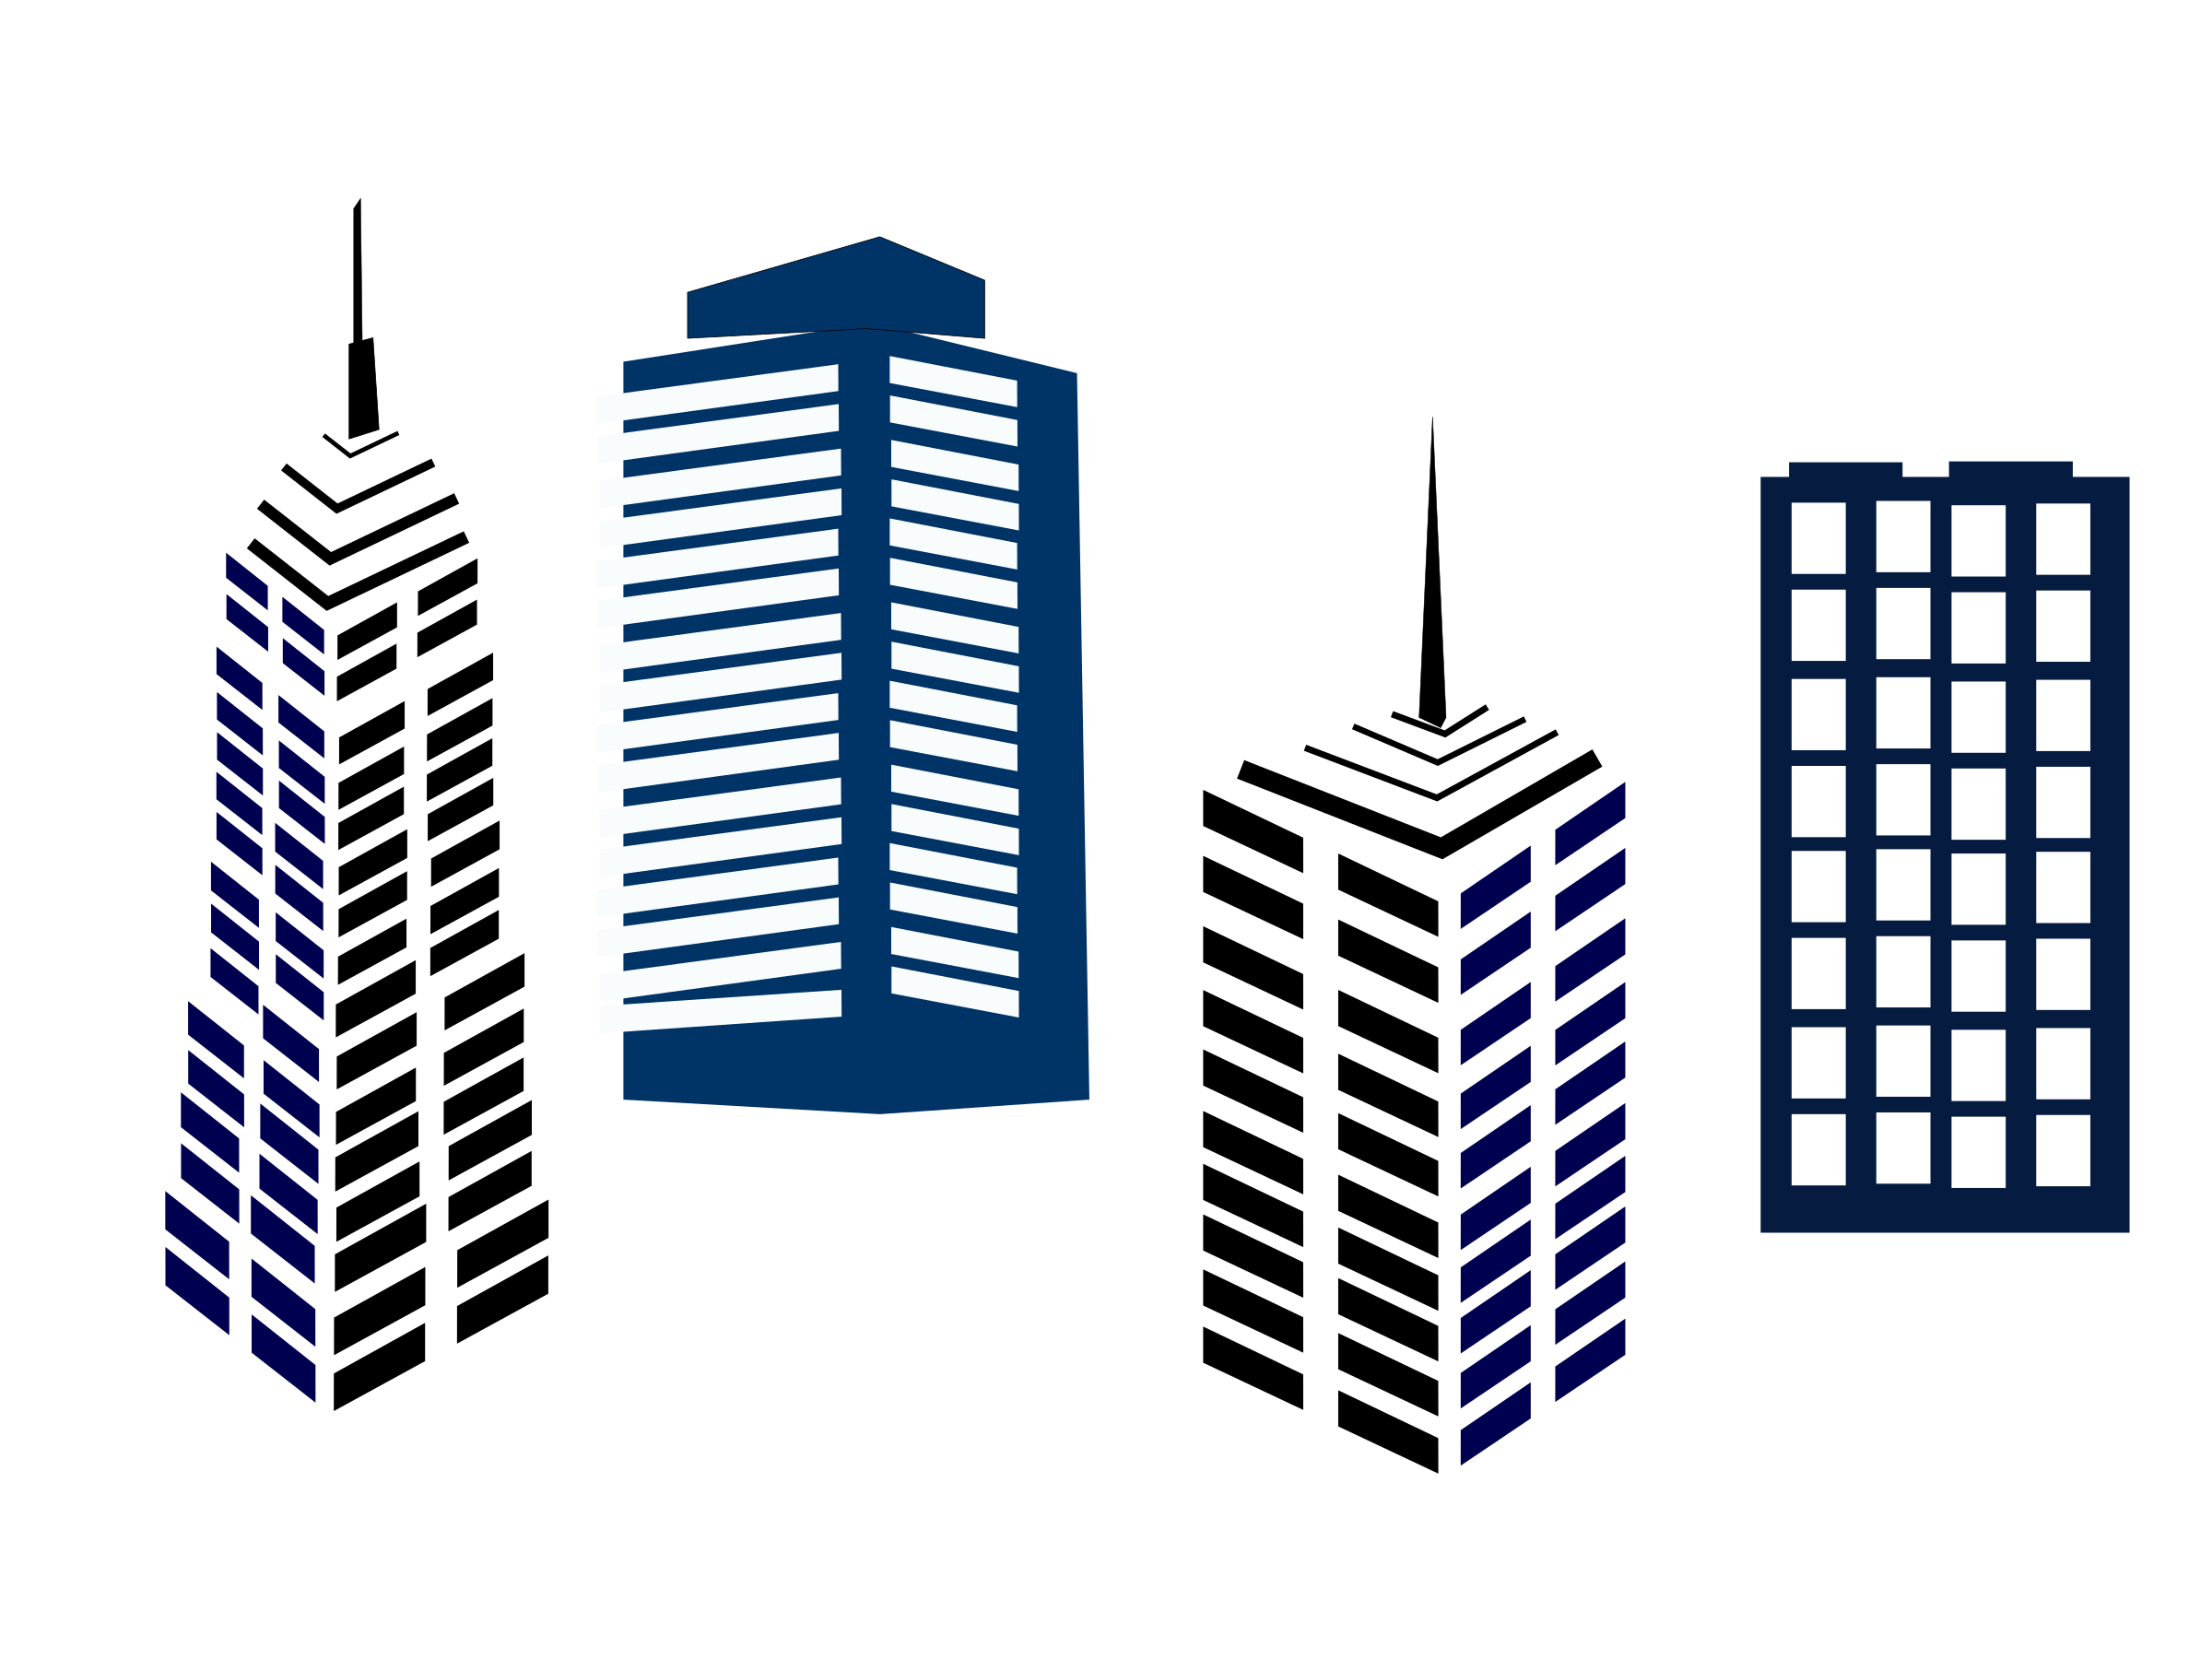 Building clipart png. Types of commercial buildings